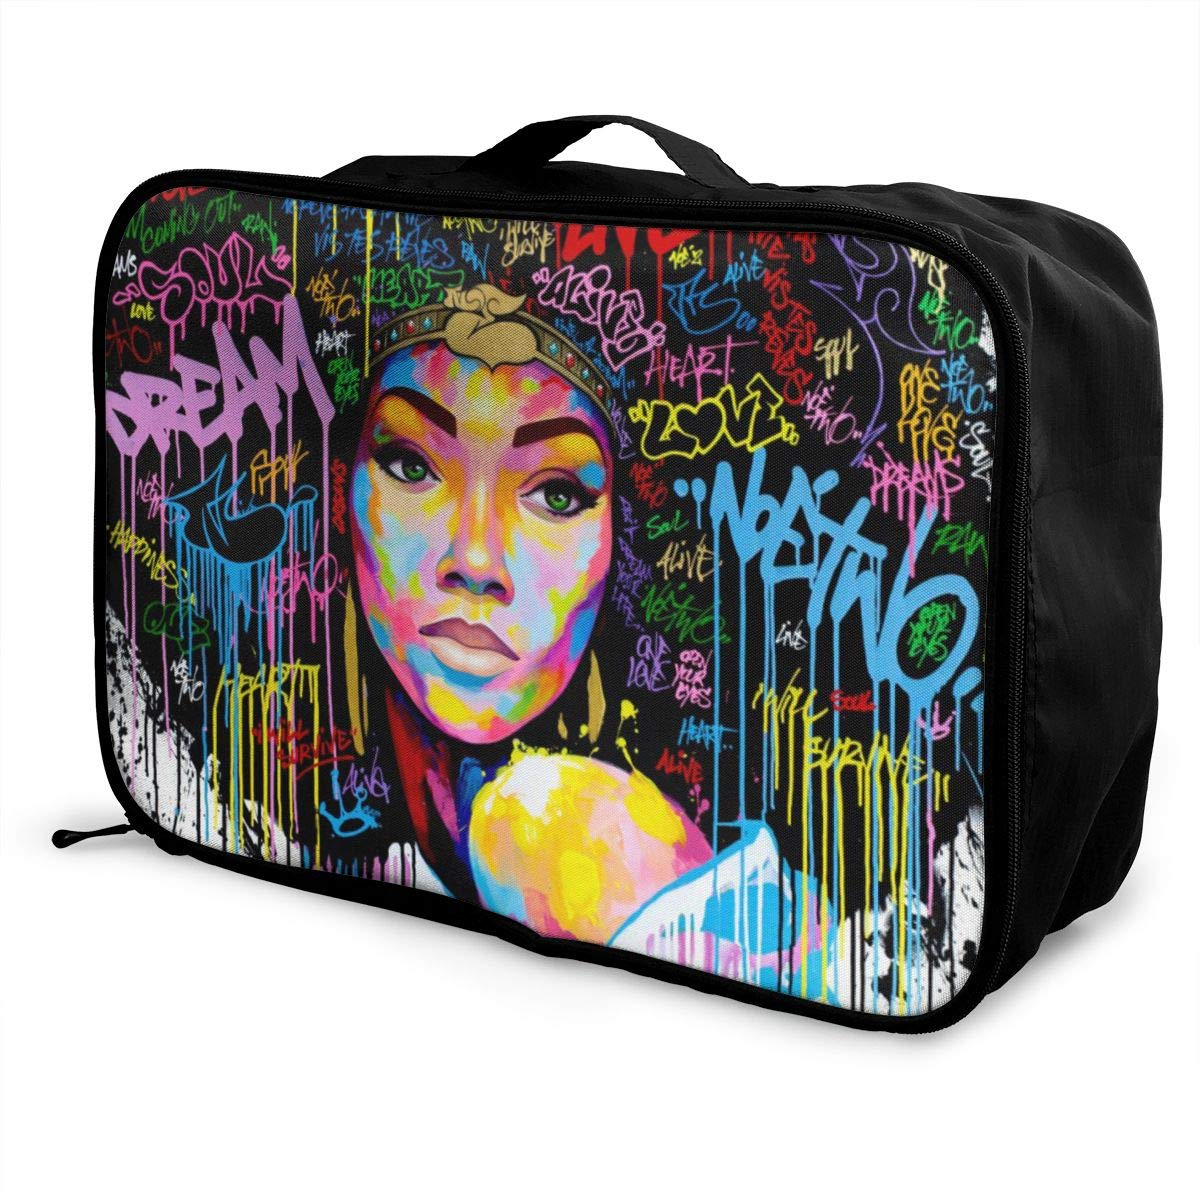 African American Women With Afro Urban Graffiti Travel Lightweight Waterproof Foldable Storage Portable Luggage Duffle Tote Bag Large Capacity In Trolley Handle Bags 6x11x15 Inch